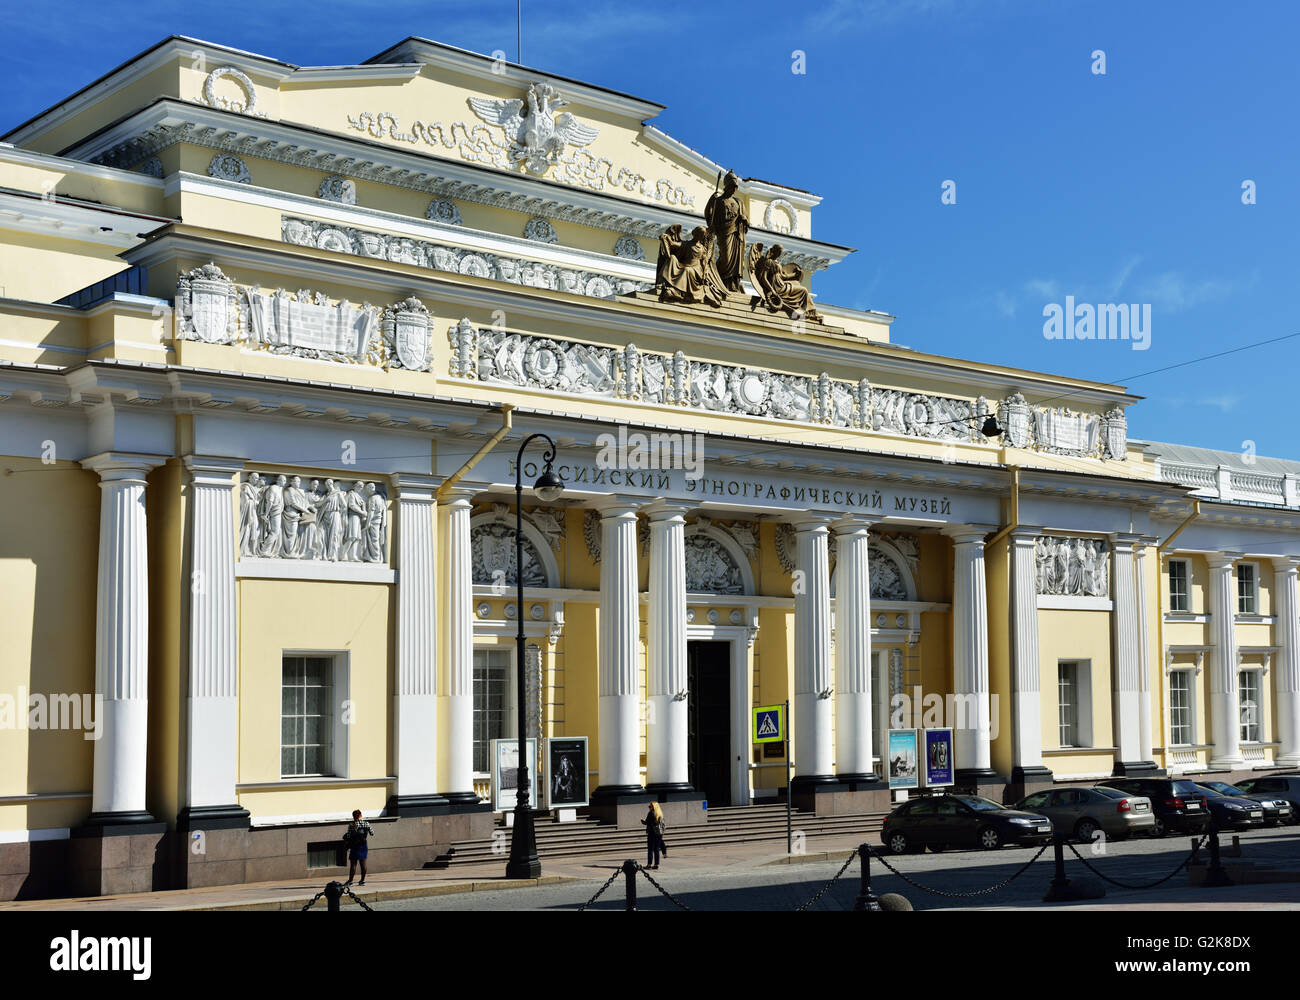 Russian Museum of Ethnography in St. Petersburg, Russia - Stock Image